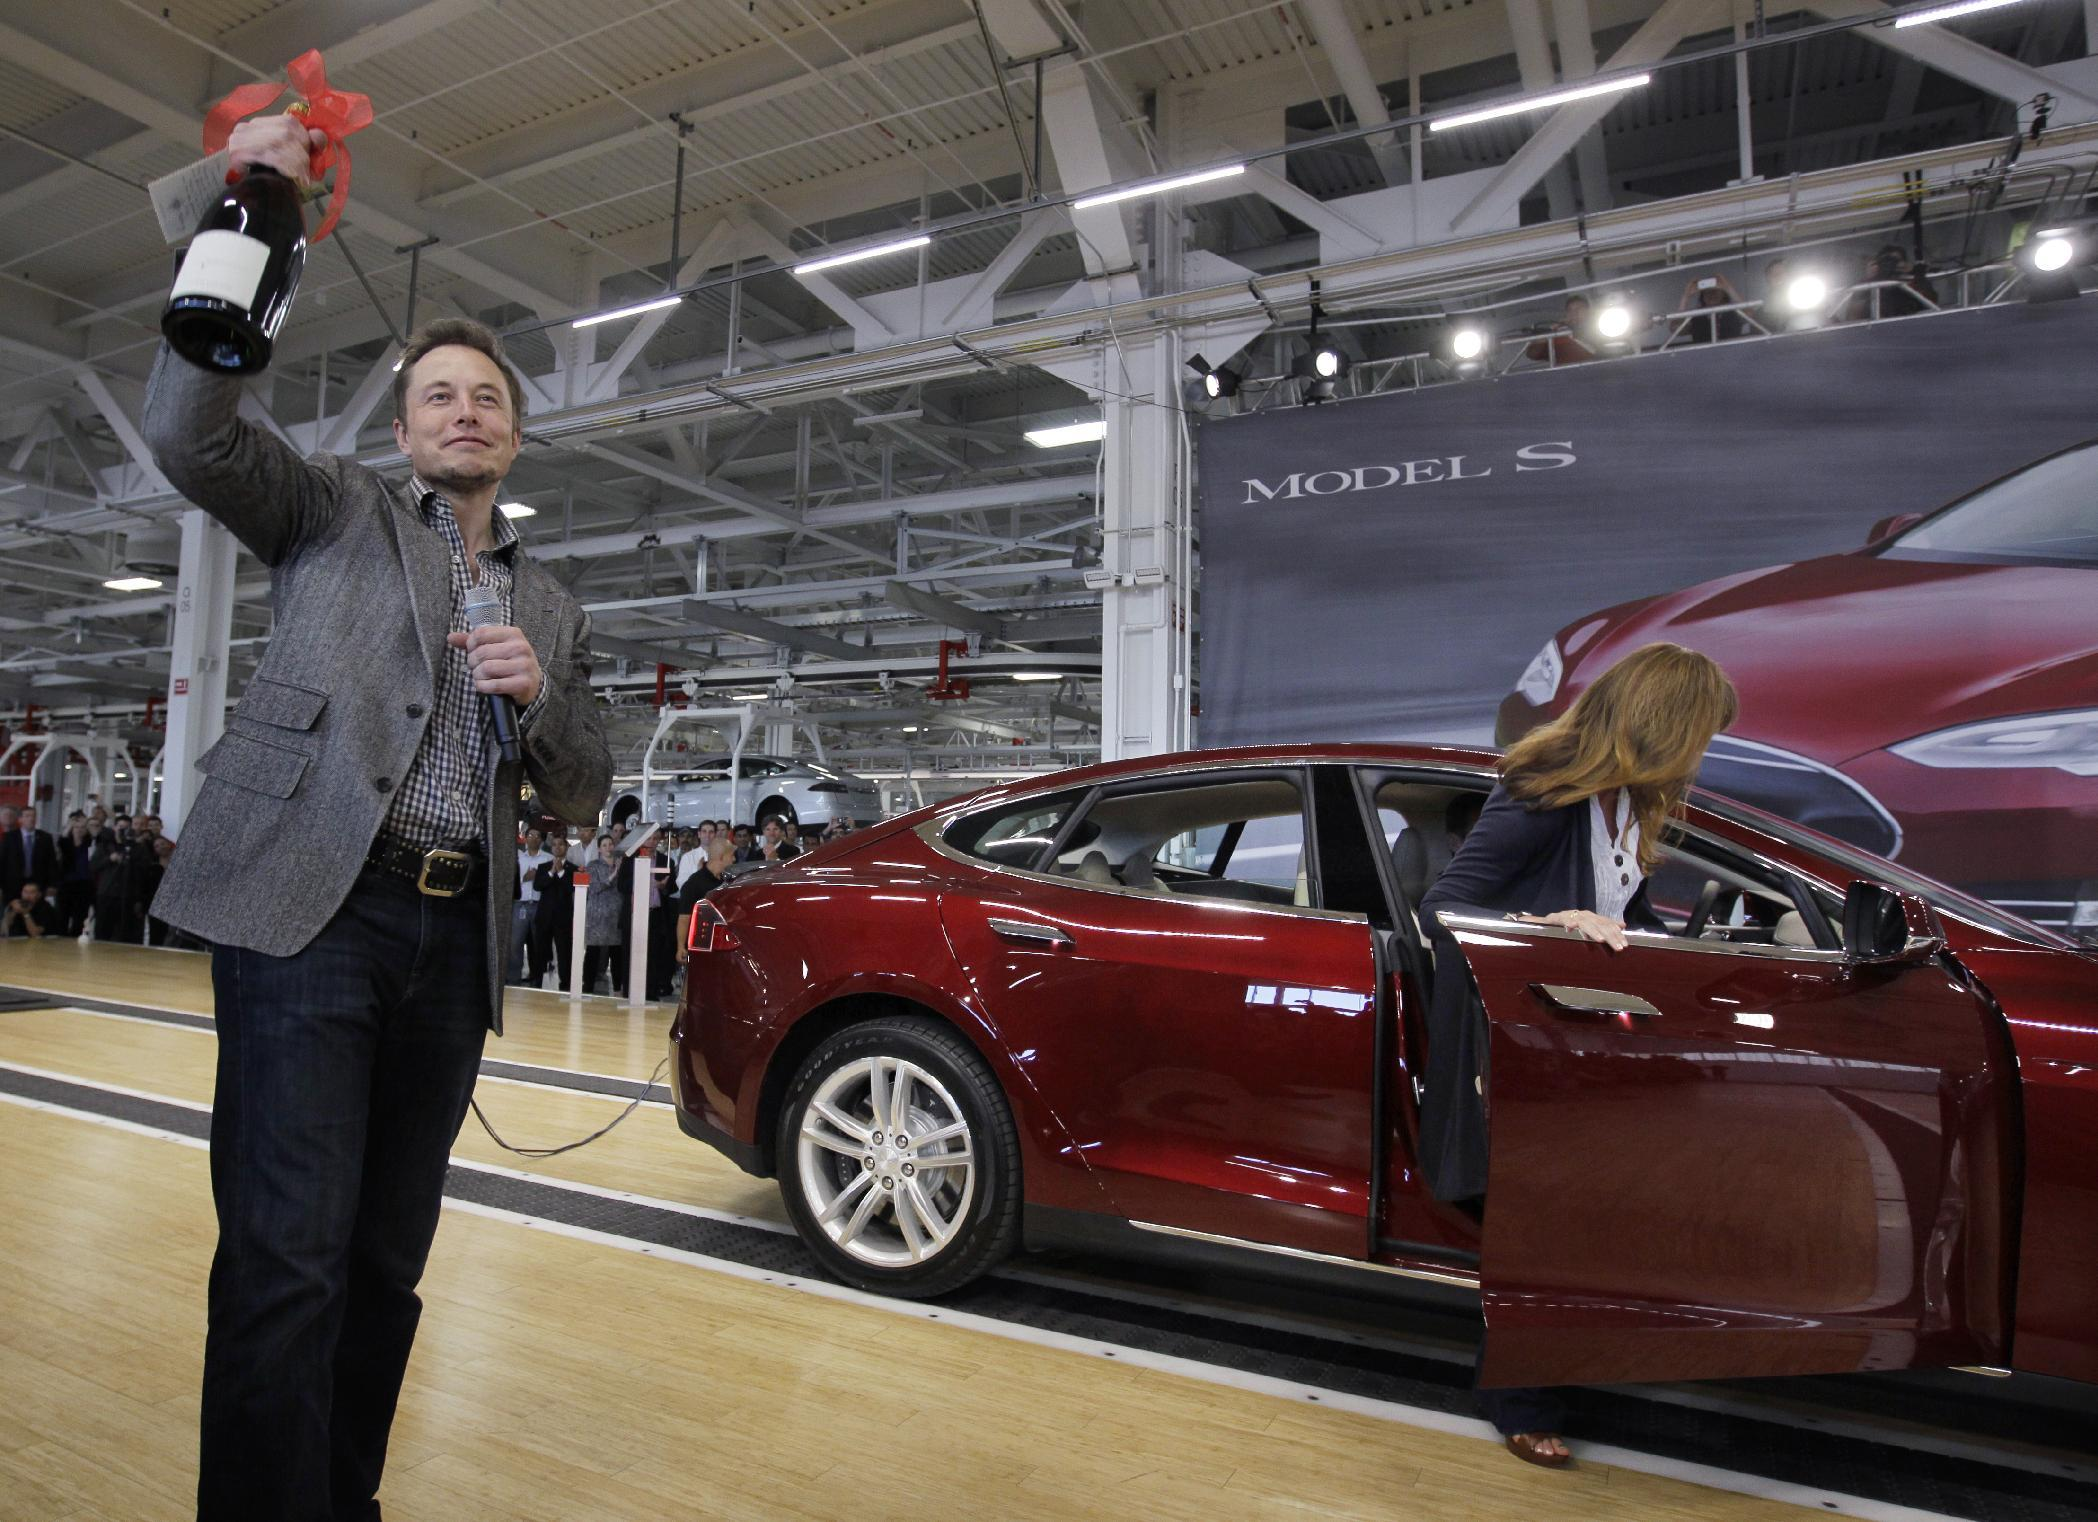 Tesla Ceo Elon Musk Announces He Will Drive Cross Country In